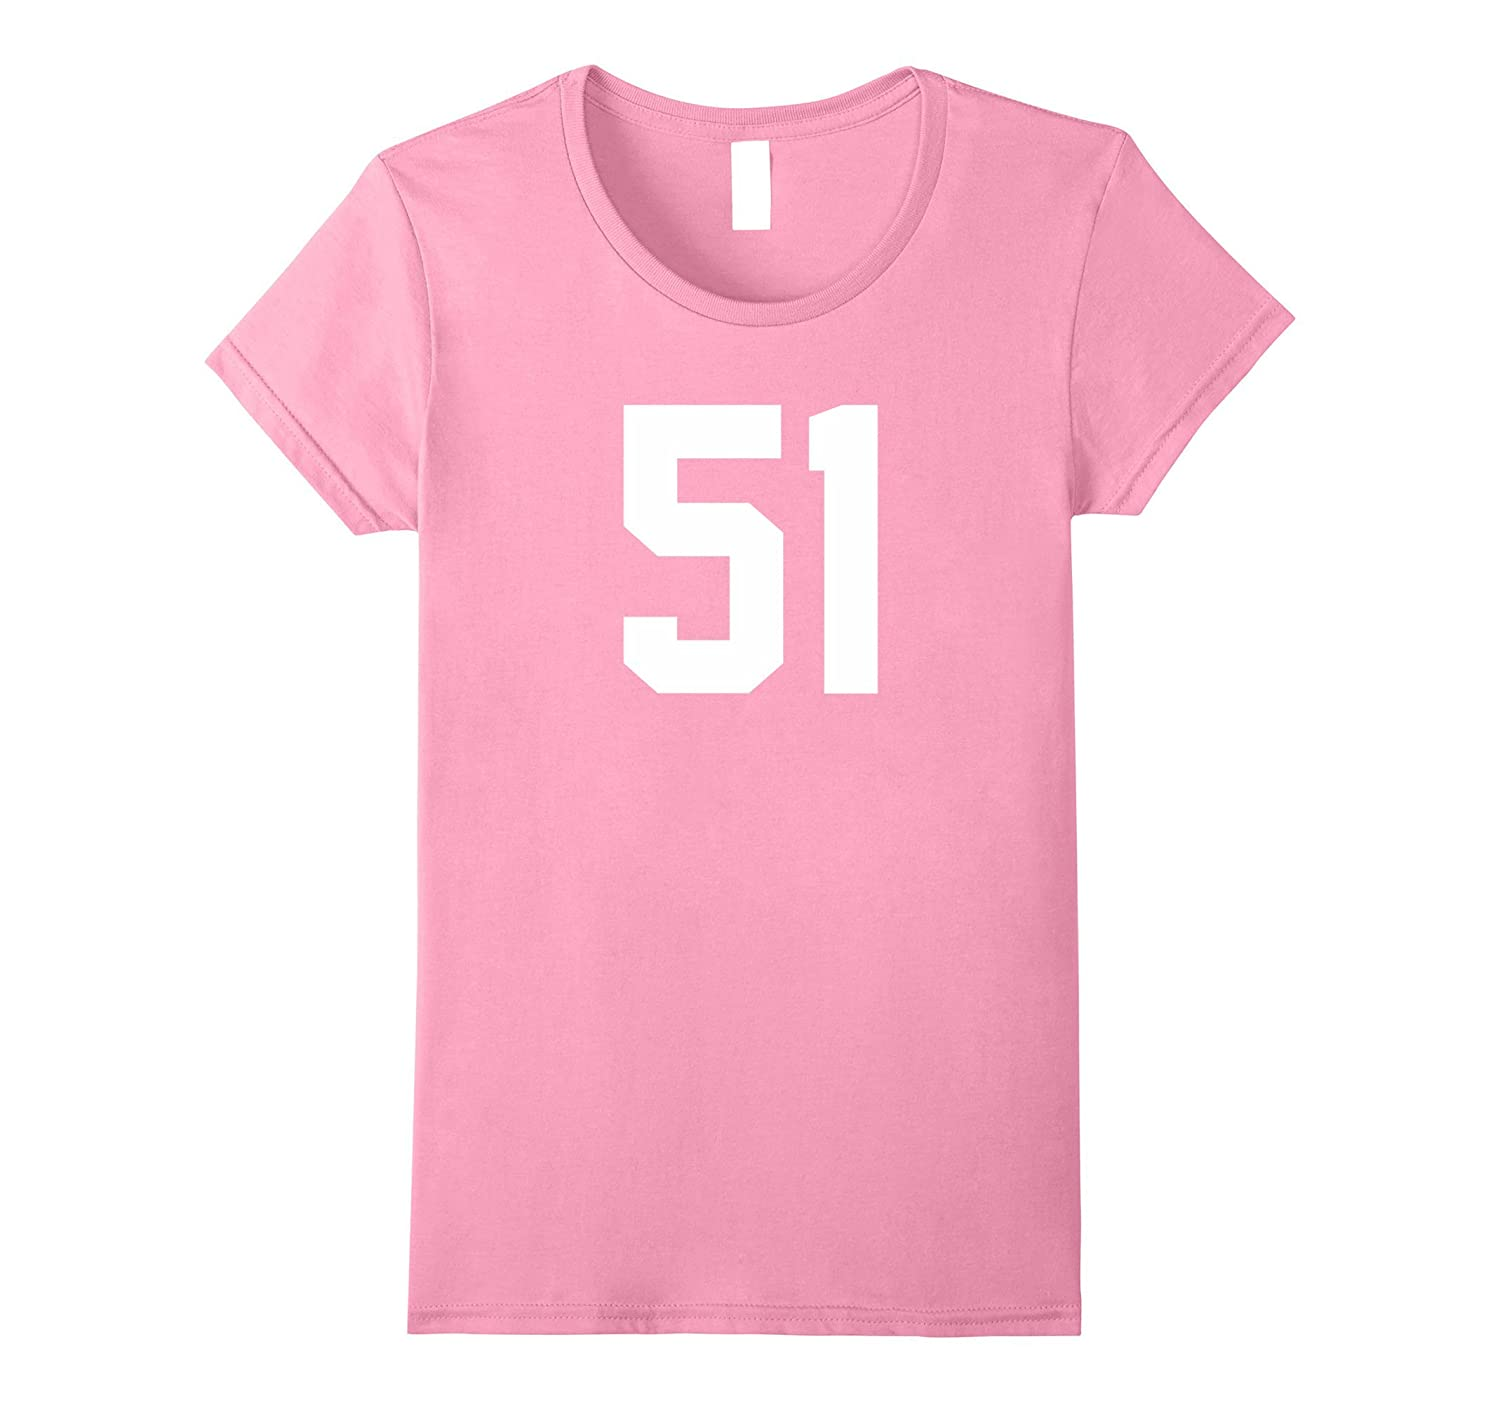 51 Sports Jersey Number T-Shirt for Team Fan Player #51